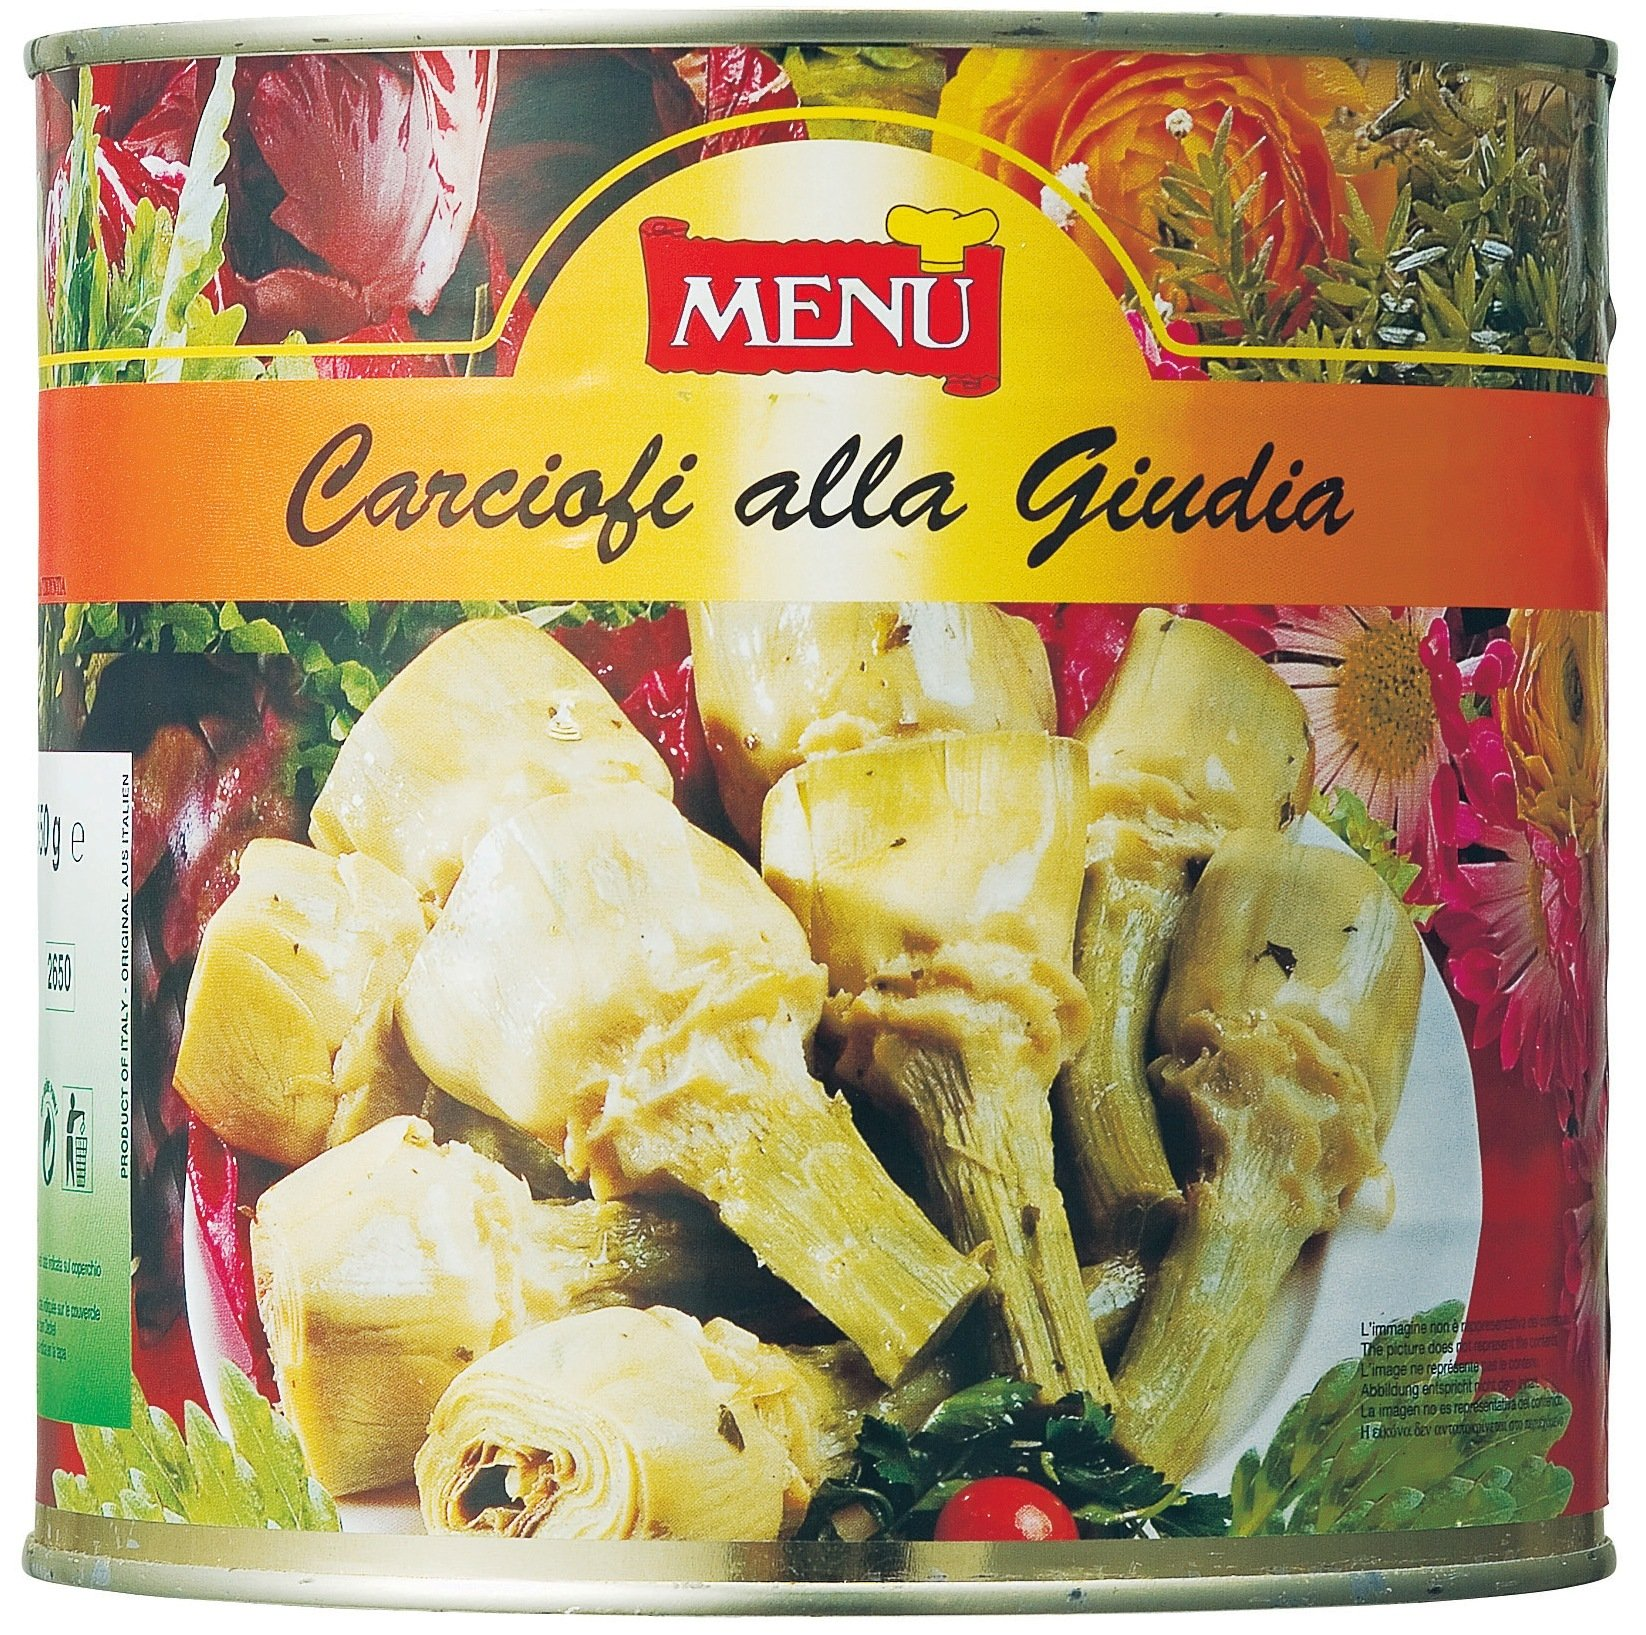 Whole Artichokes with Stems, Marinated in Oil with Herbs - 1 can - 5.6 lbs